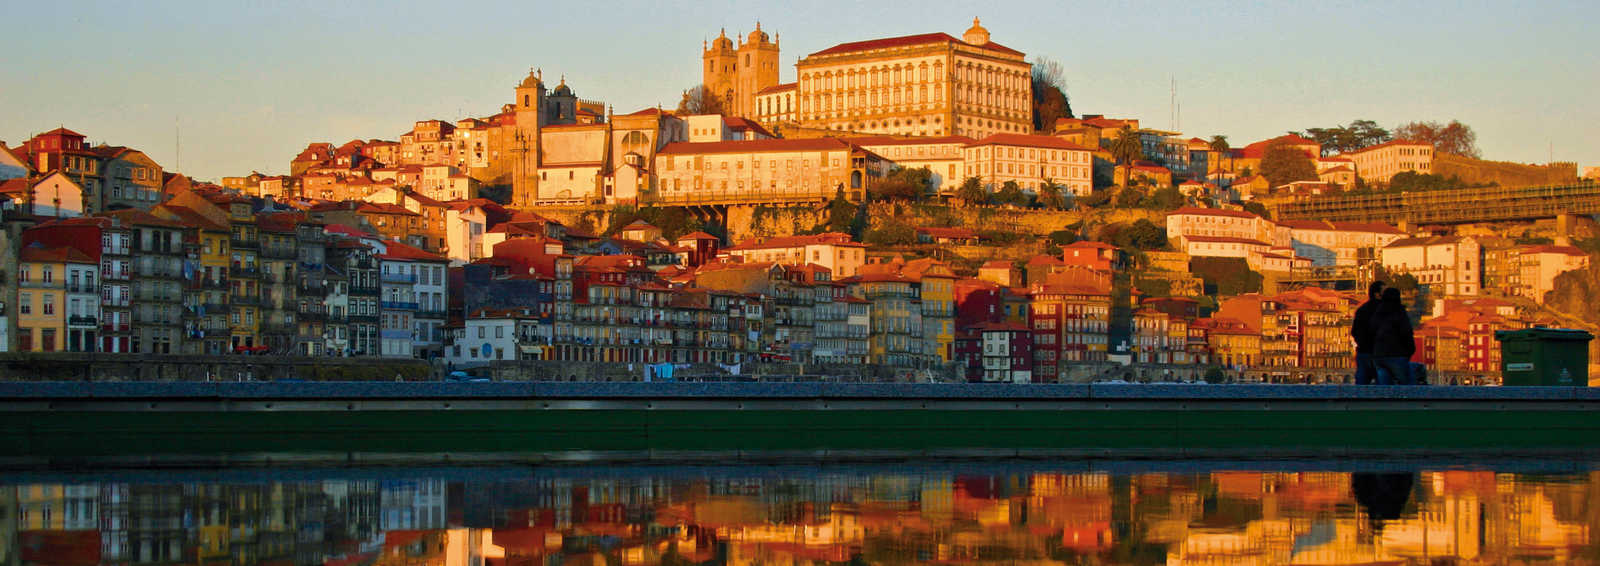 The cityscape of Porto at sunset, Portugal